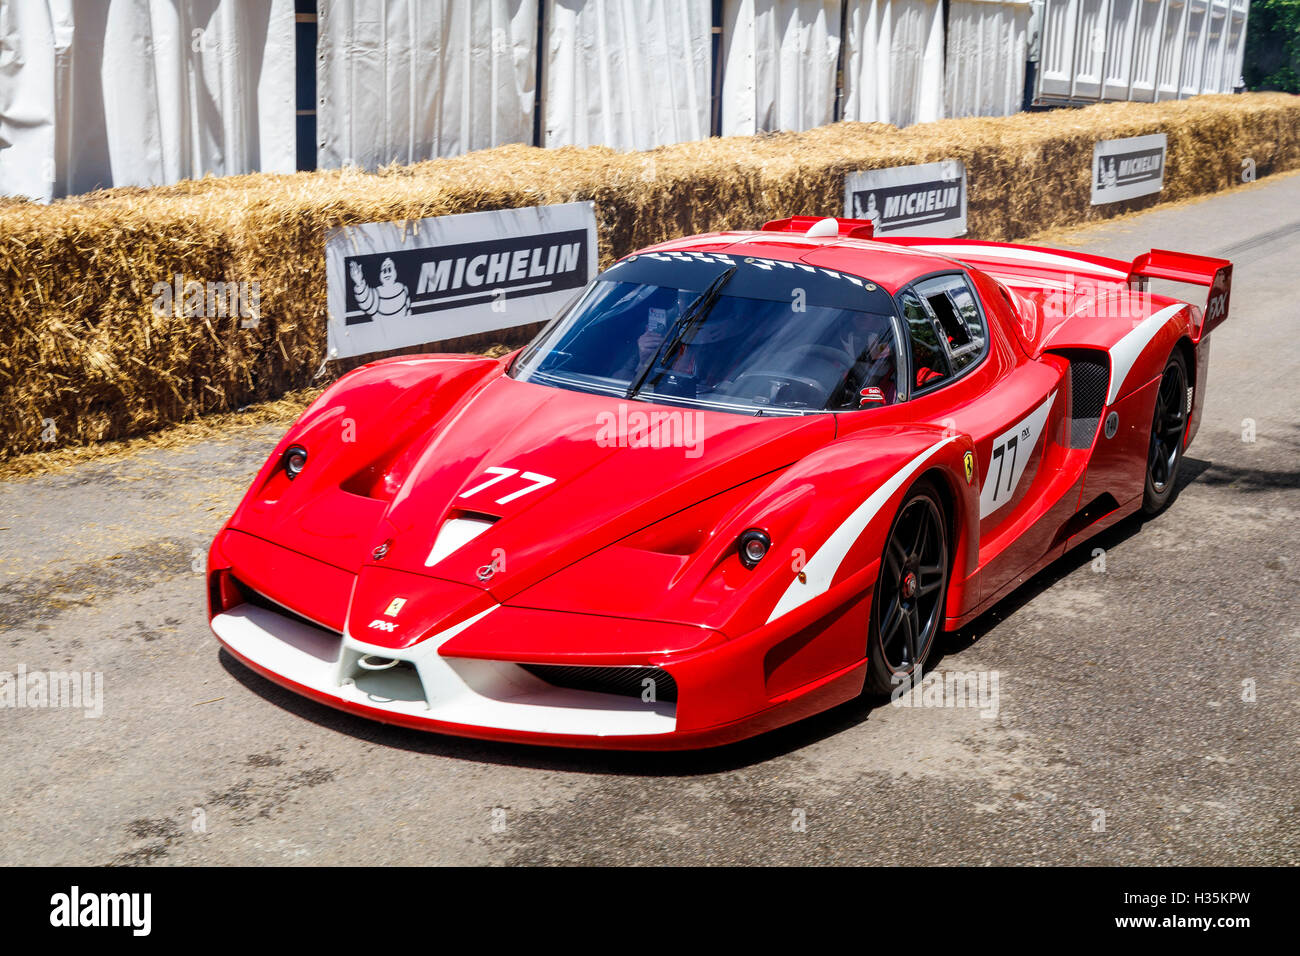 2007 Ferrari Fxx Evo At The 2016 Goodwood Festival Of Speed Sussex Stock Photo Alamy